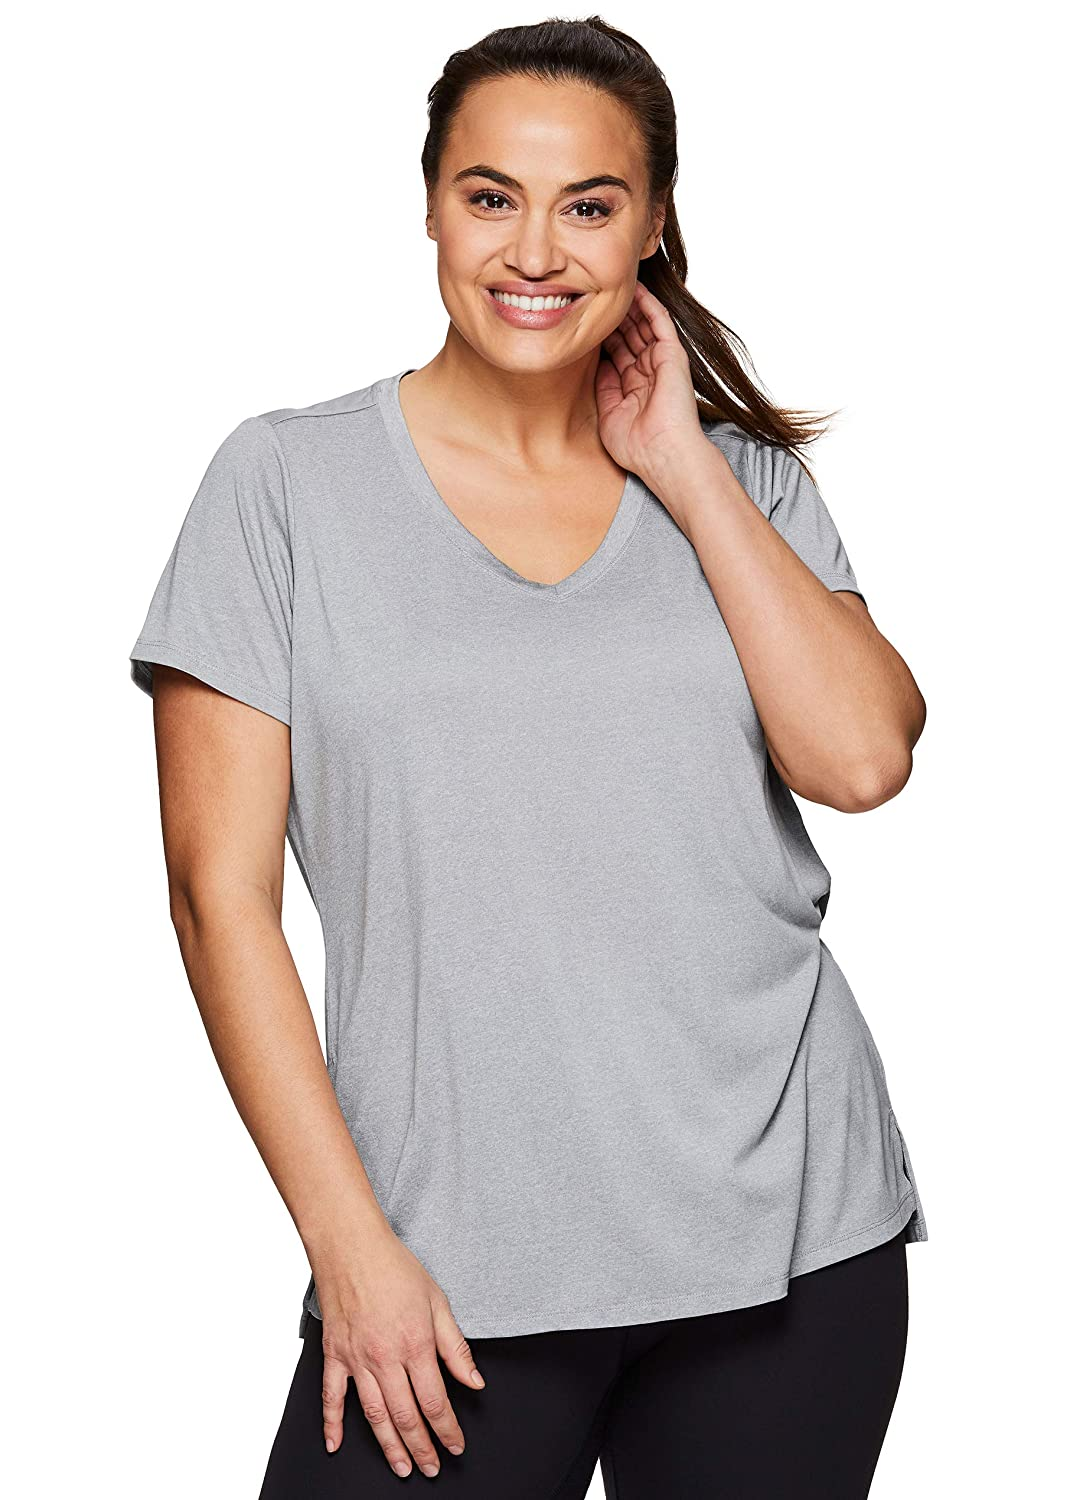 d825344ff5 RBX Active Women's Plus Size Running Workout Short Sleeve Yoga Top at  Amazon Women's Clothing store: